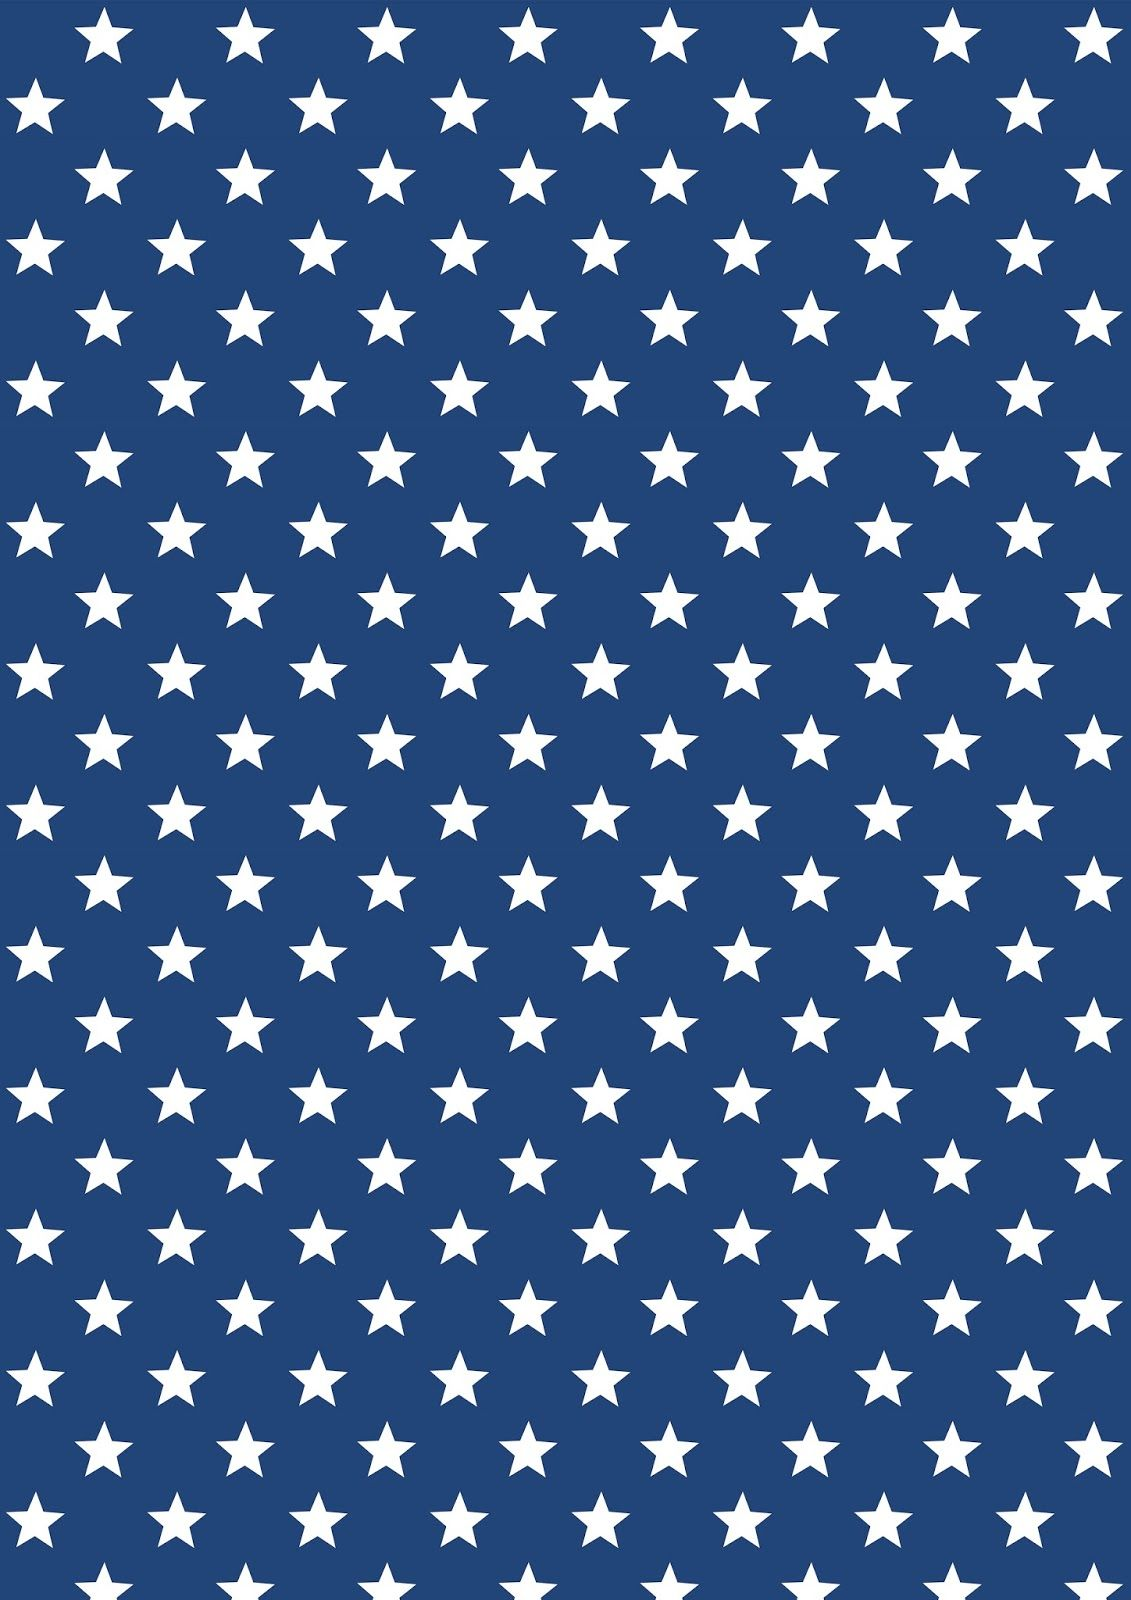 Free printable stars and stripes pattern papers   ausdruckbares